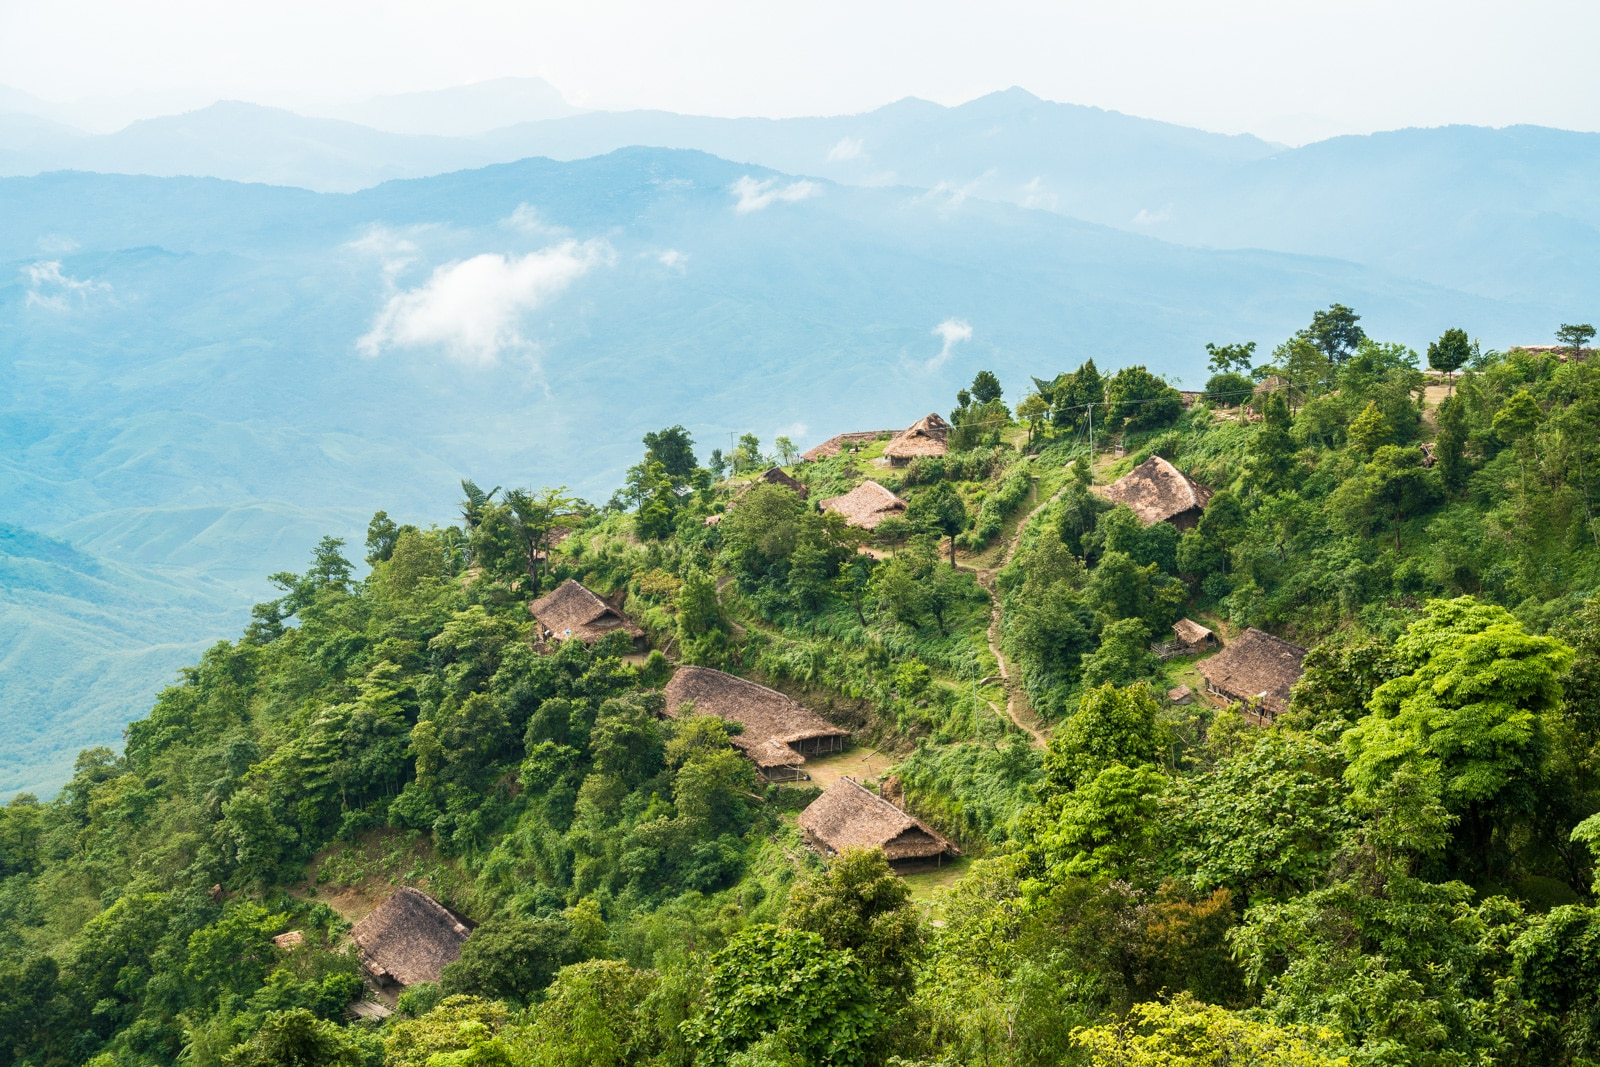 Opium and Jesus and headhunting in Longwa Village, Nagaland, India - Small village on the border with Burma (Myanmar) - Lost With Purpose